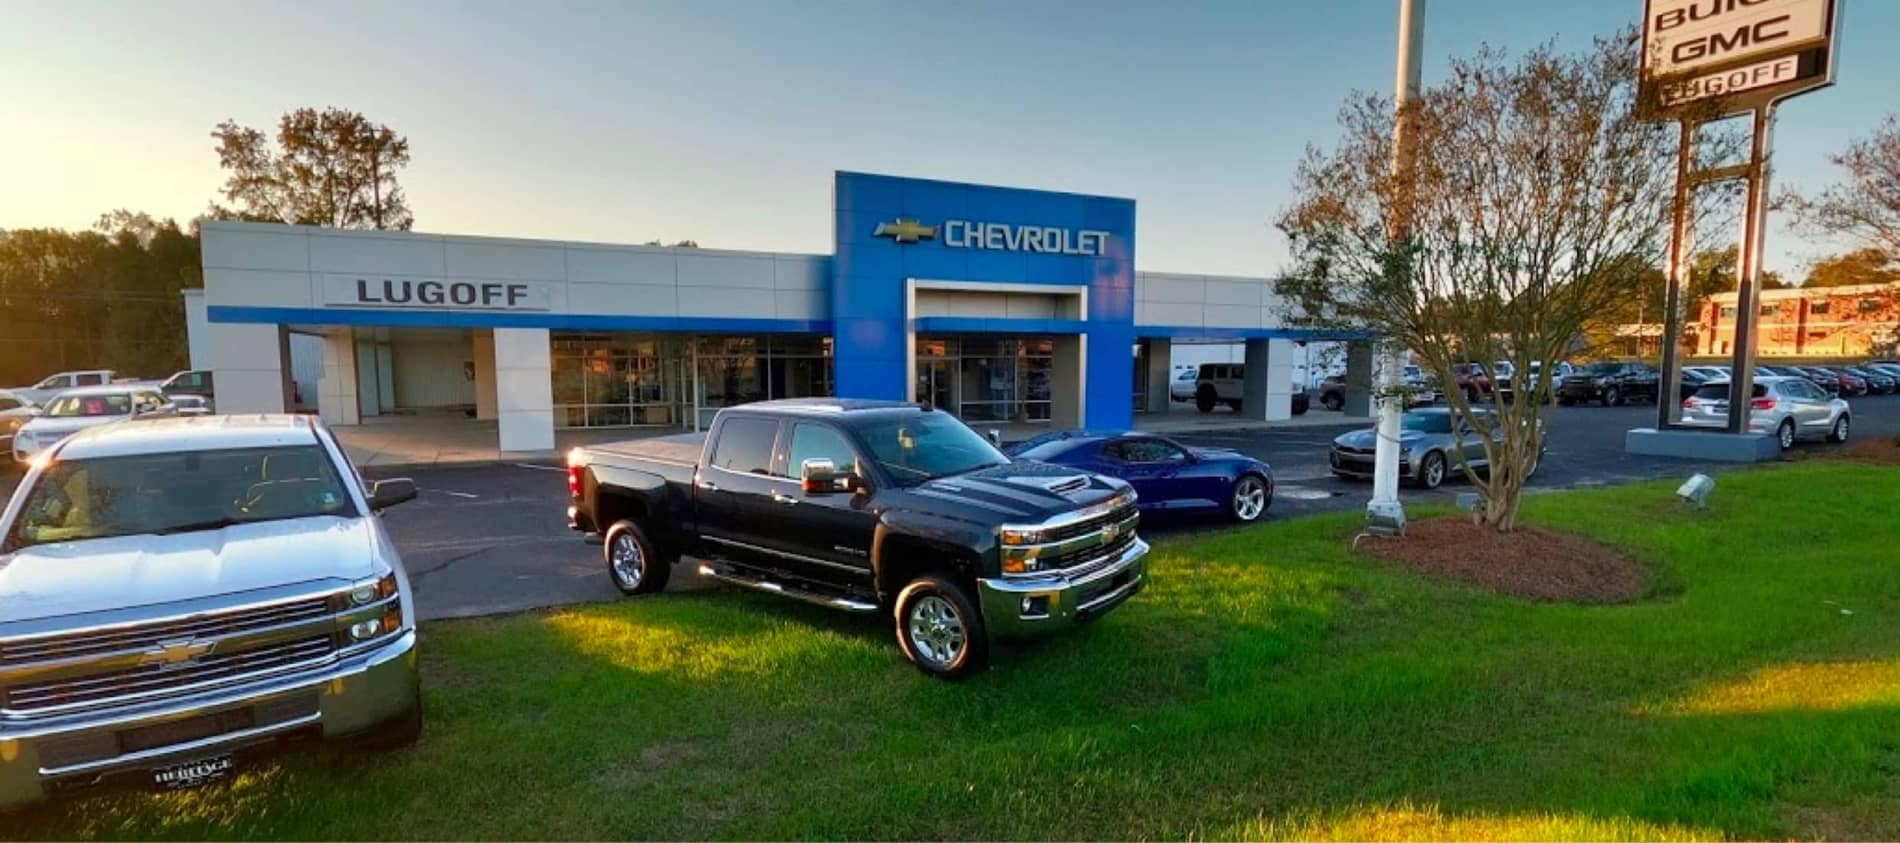 Lugoff Chevy Buick GMC dealership